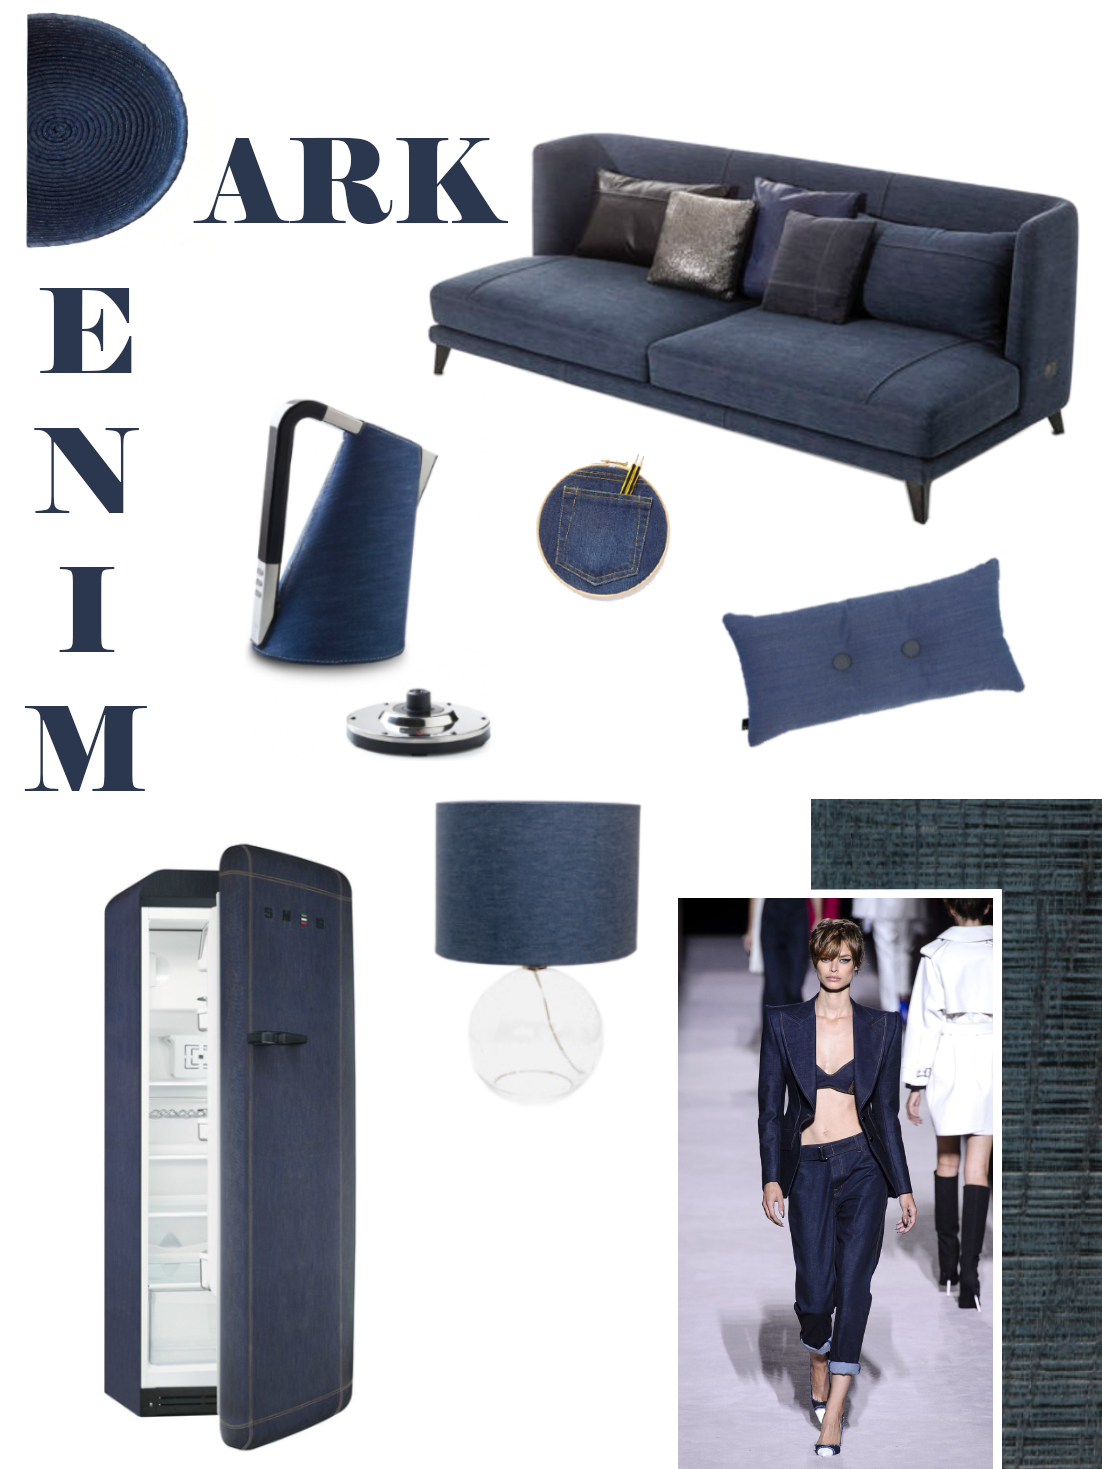 Dark denim mood board: a selection of furniture and accessories.